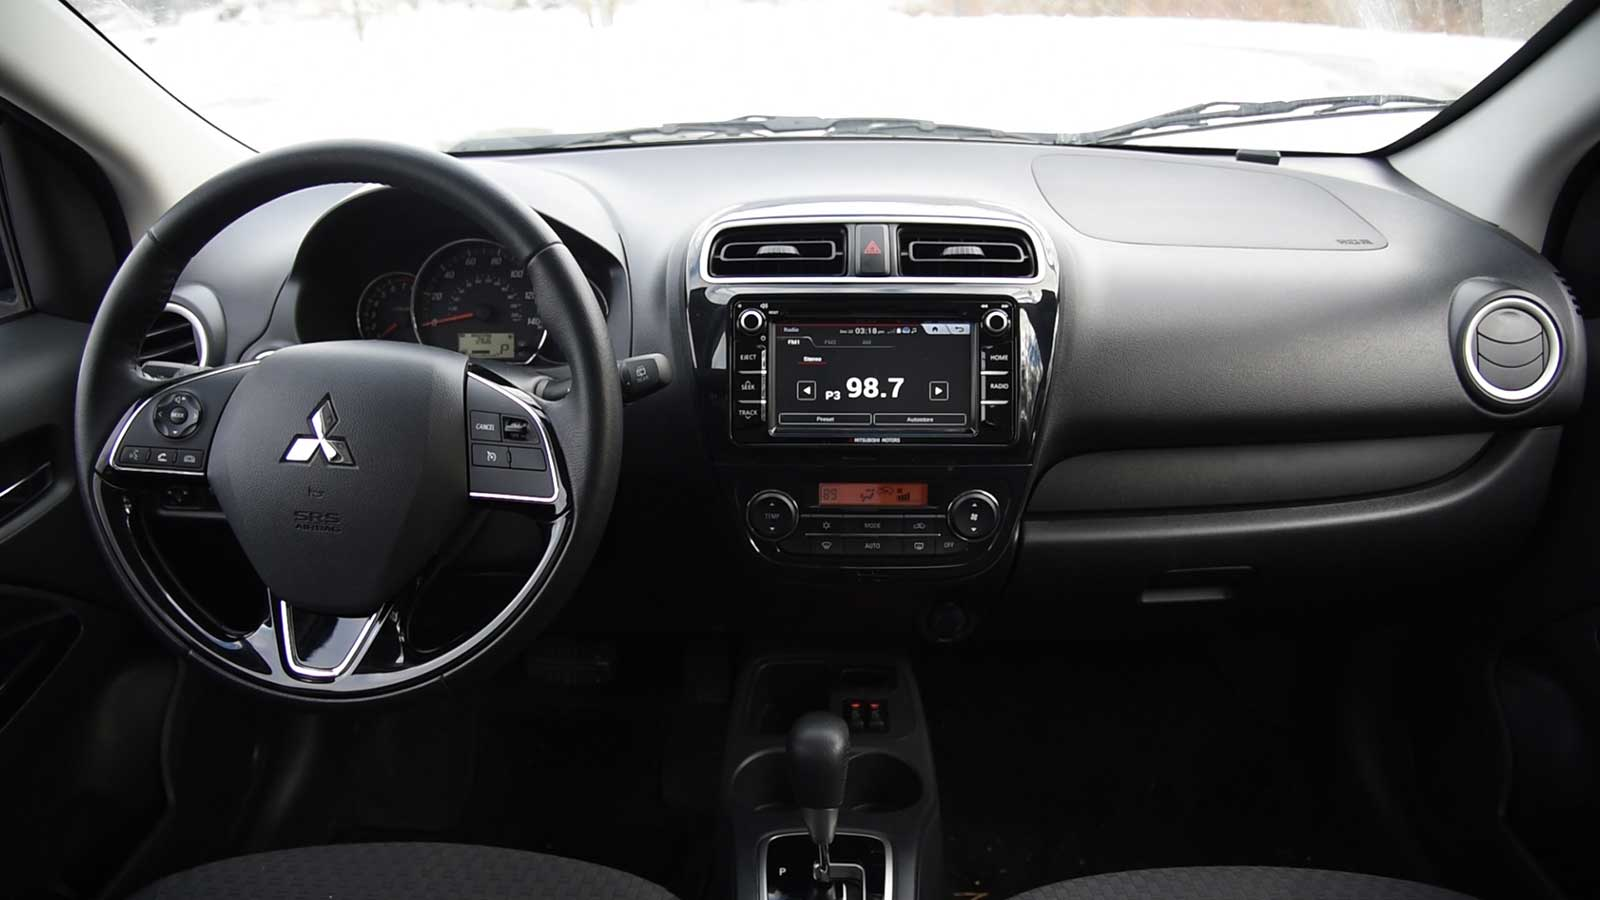 2017 Mitsubishi Mirage Interior 04